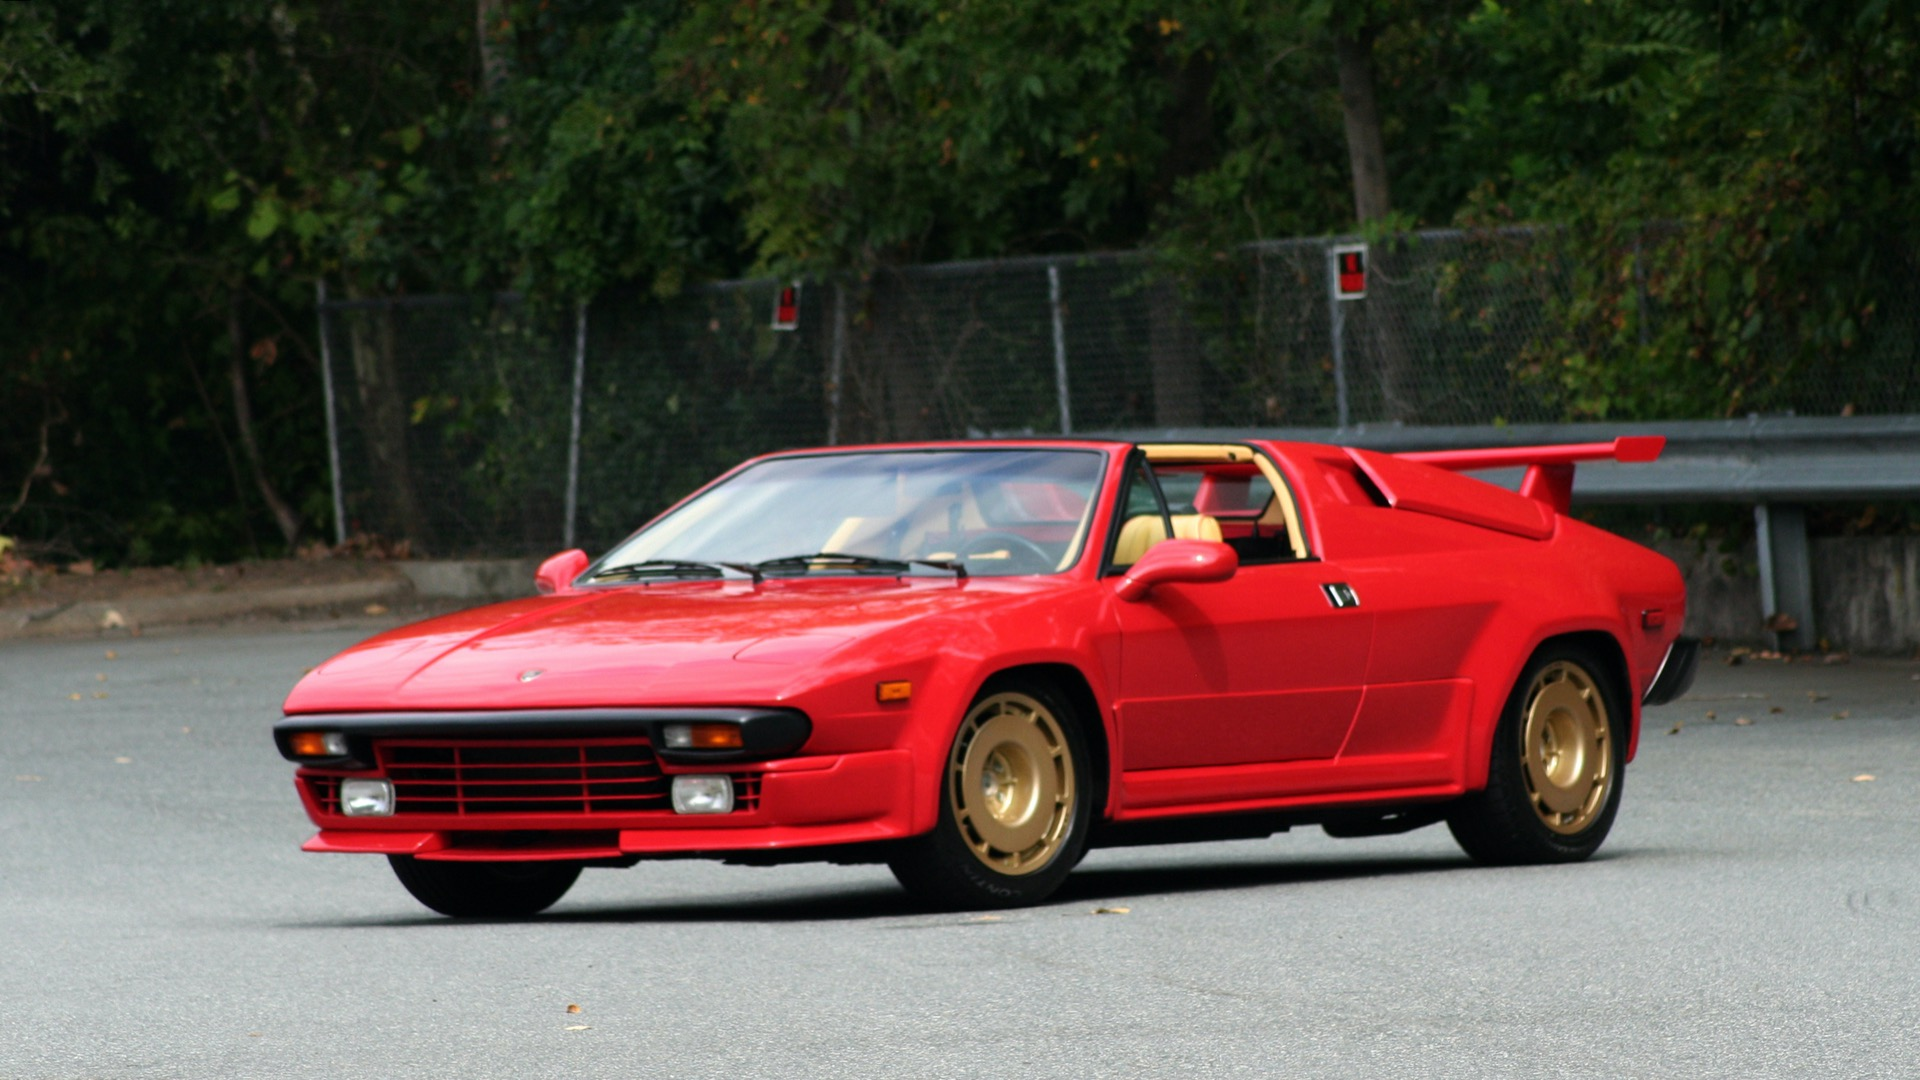 Used 1988 Lamborghini Jalpa 3.5 / 5-Speed Man / Low Miles / Excellent Condition for sale $108,995 at Formula Imports in Charlotte NC 28227 15